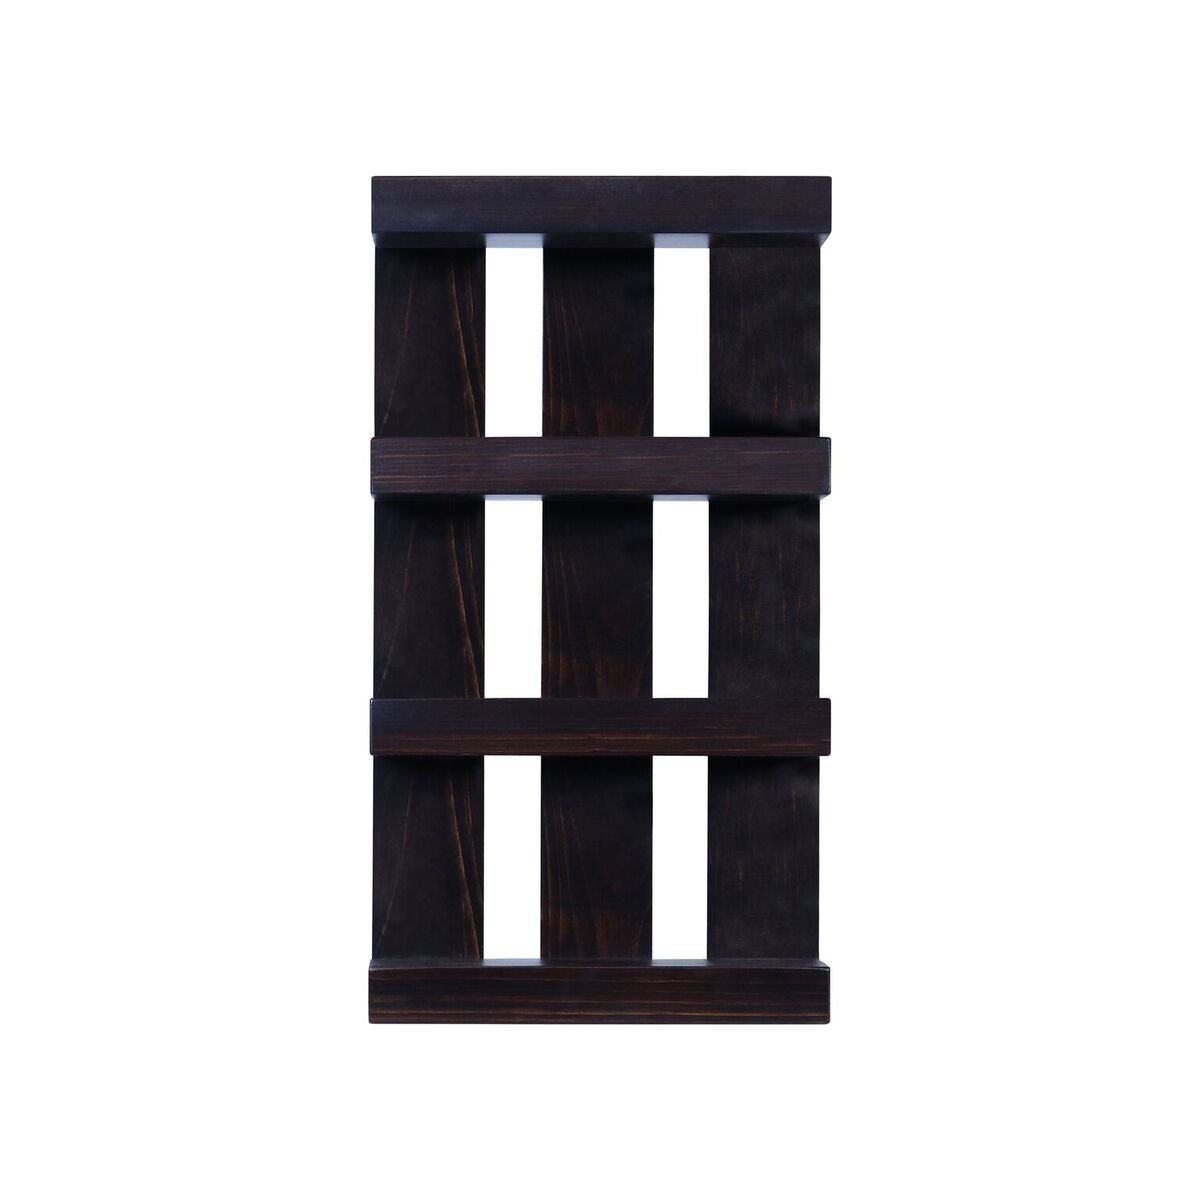 Solid Wood 4 tier Wall Mount Shelves Home Decor Decoration for Bathroom, Living Room, Kitchen and Entryway Made in the USA by Rooms Organized (Expresso, 22'' h x 15'' w x 4.25'' deep)